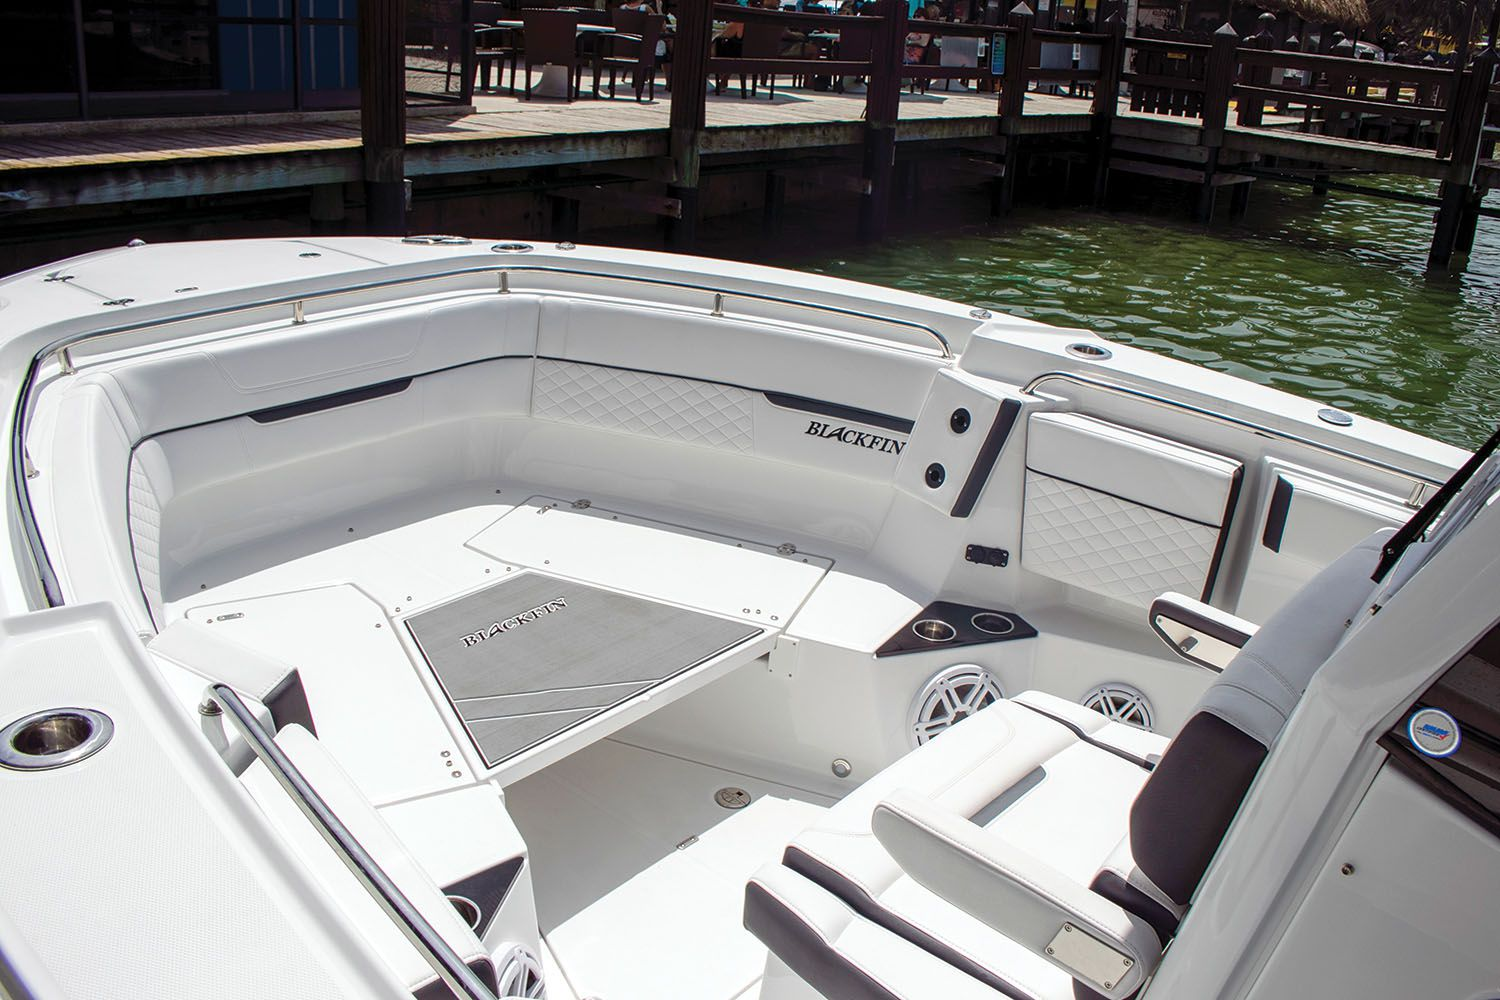 Bow U-shaped seating includes a filler that bridges the gap to form a raised casting deck.